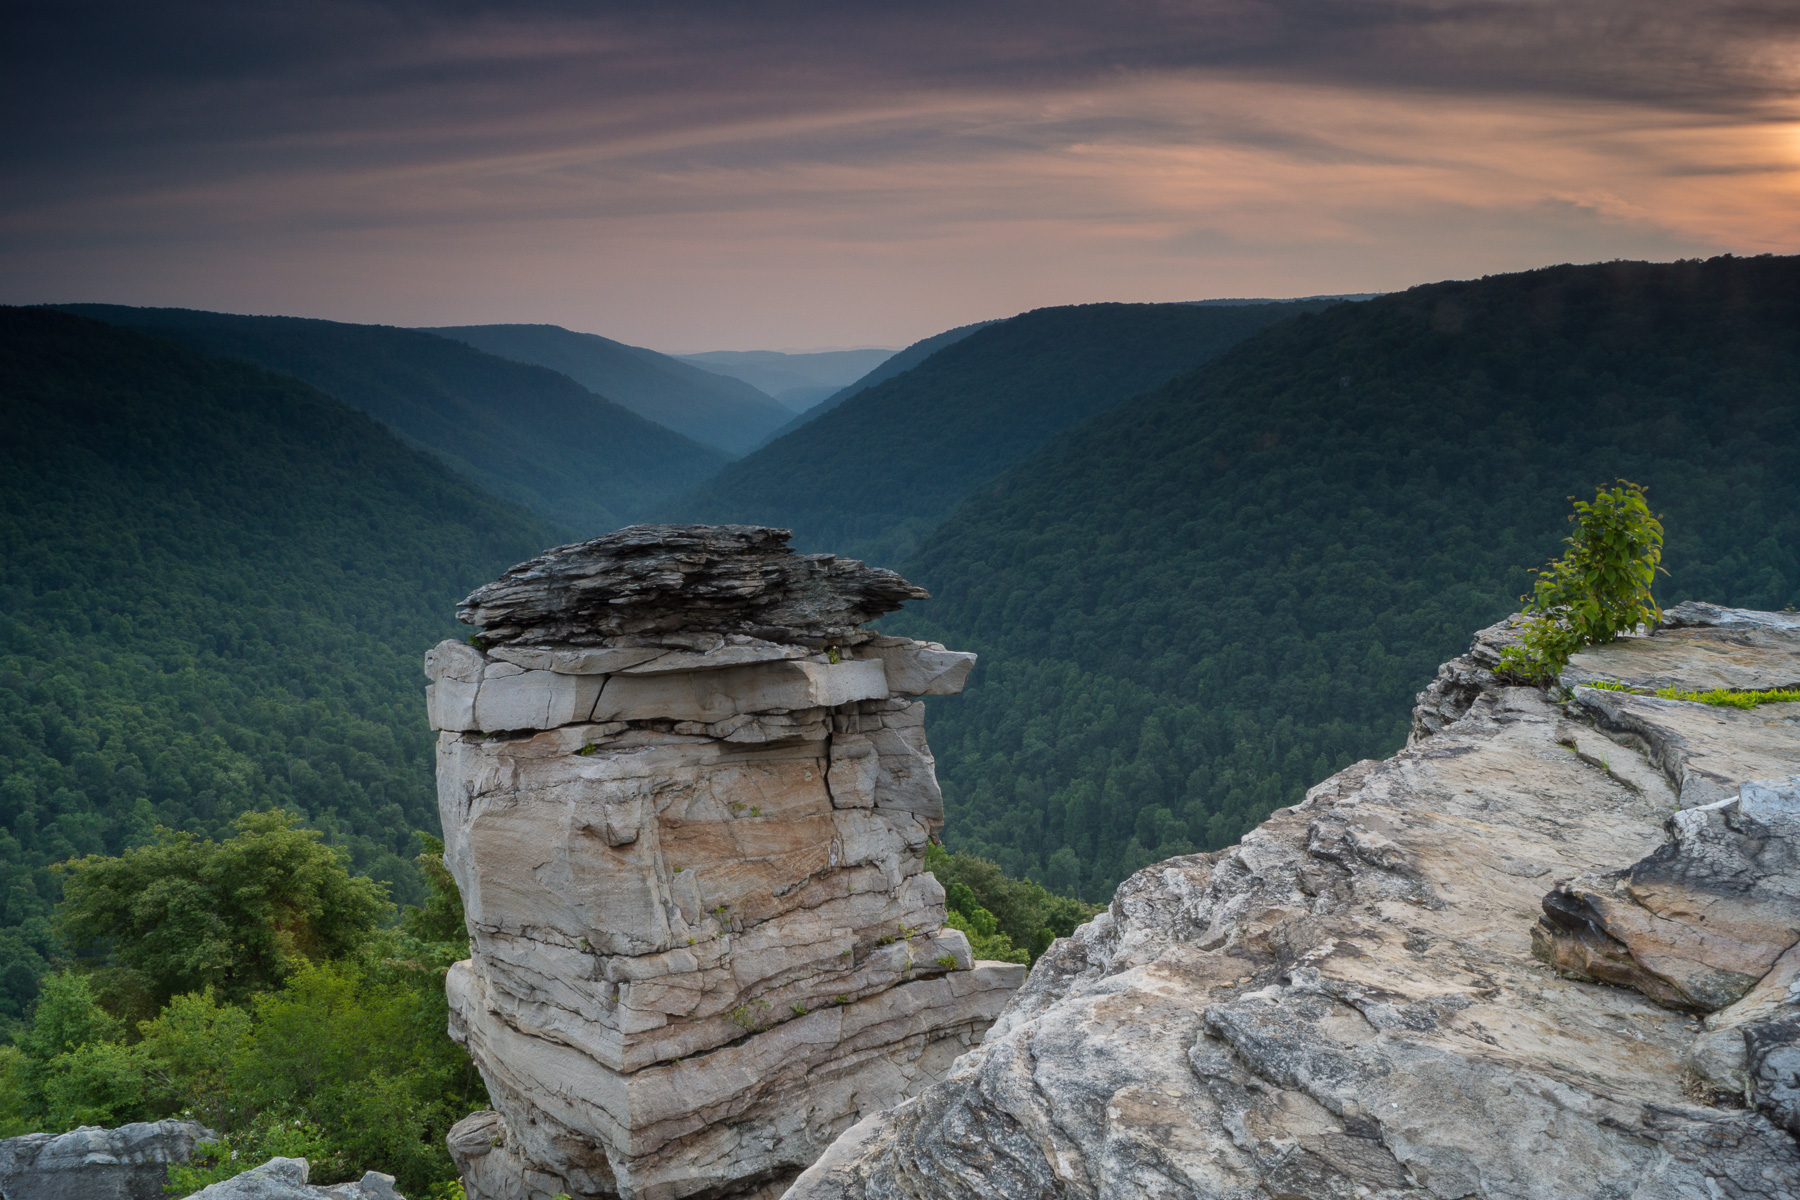 Lindy Point, WV